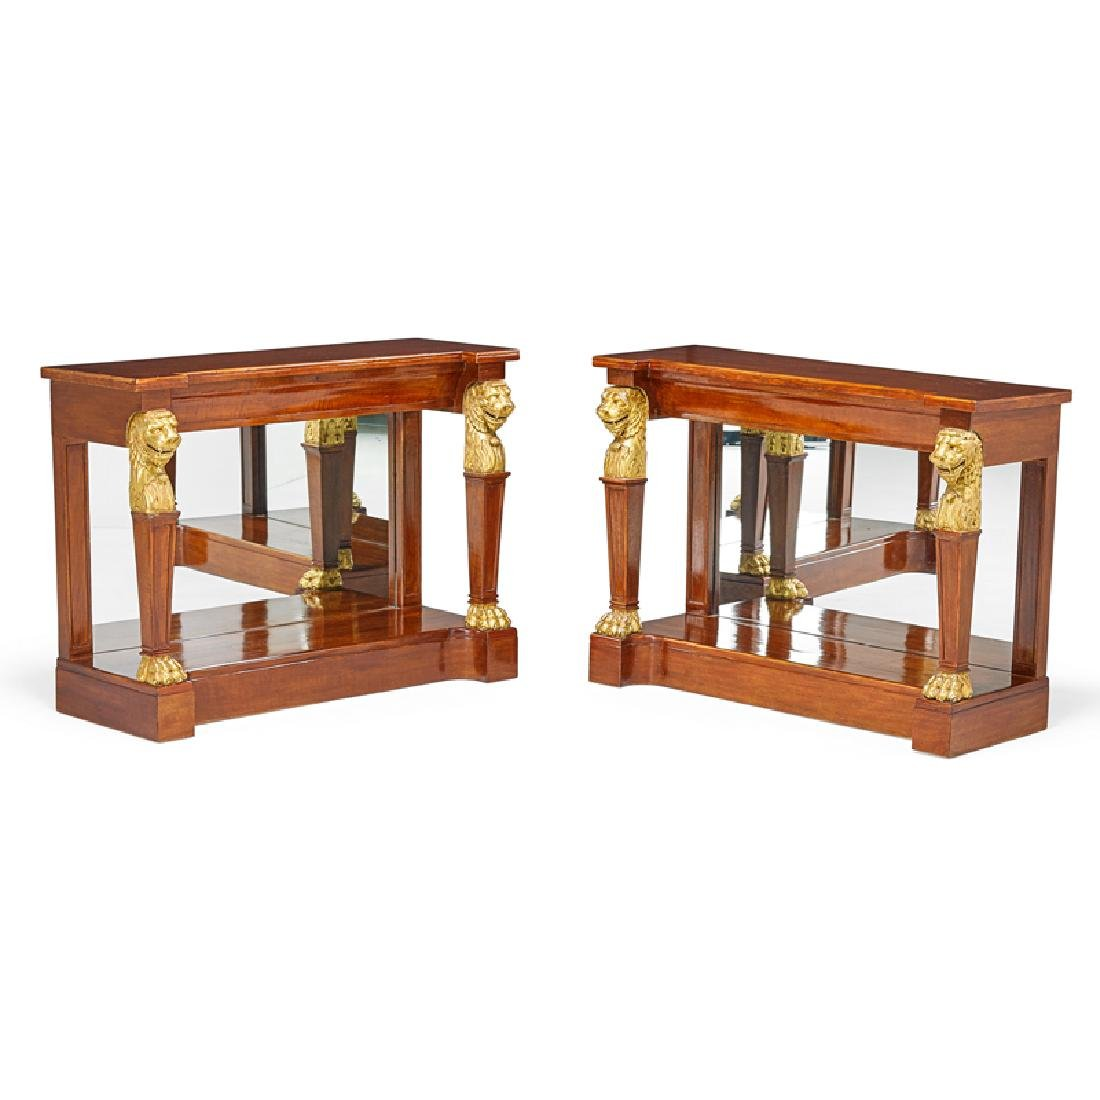 PAIR OF EMPIRE PARCEL GILT MAHOGANY CONSOLE TABLES